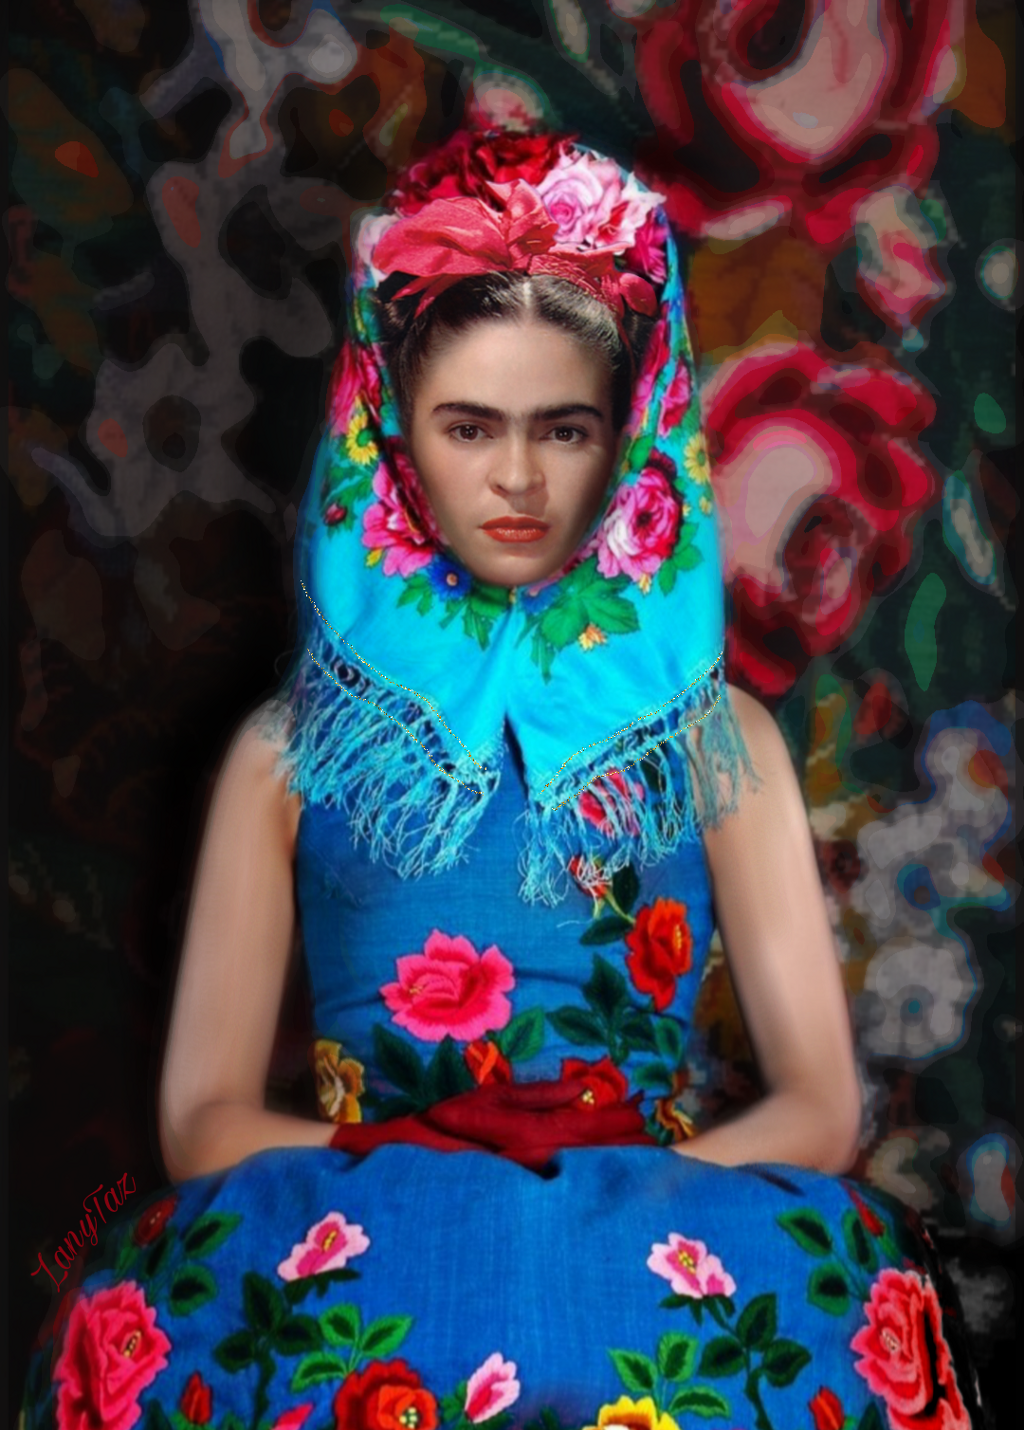 """""""I'd rather wear #flowers in my #hair than diamonds around my neck"""". An #edit of #fridakahlo using Jessica's posted image. Check her gallery. It's filled with awesome fte images! Beautiful portraits.  👉 @hadayluna 🍃💙🍃👑🌵🏜️ #frida #flowerpower #patterns #colorful #artist #unibrow_queen 💙🙏"""